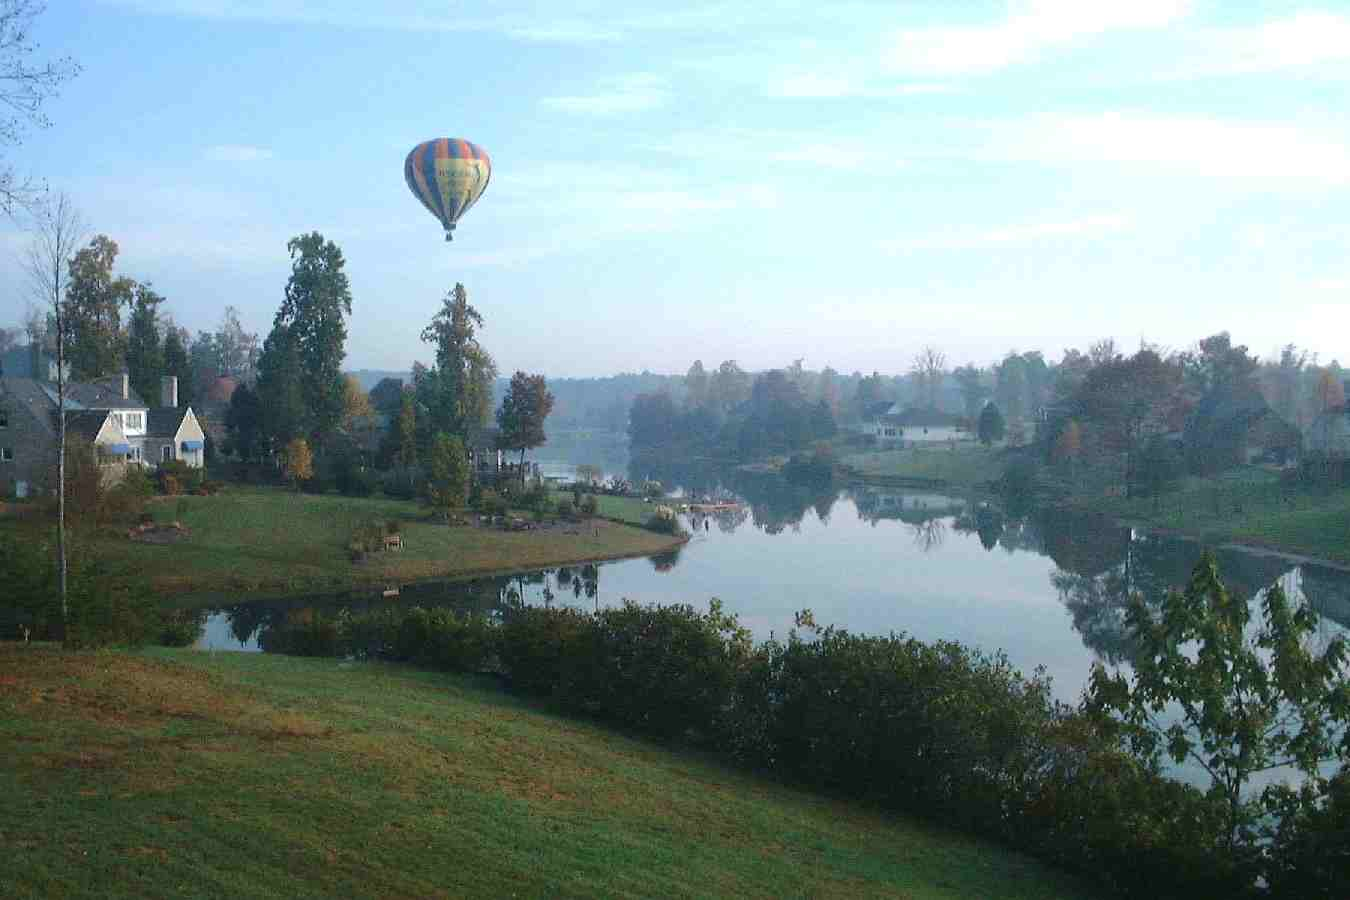 [Hot Air Balloon over Swan Lake]